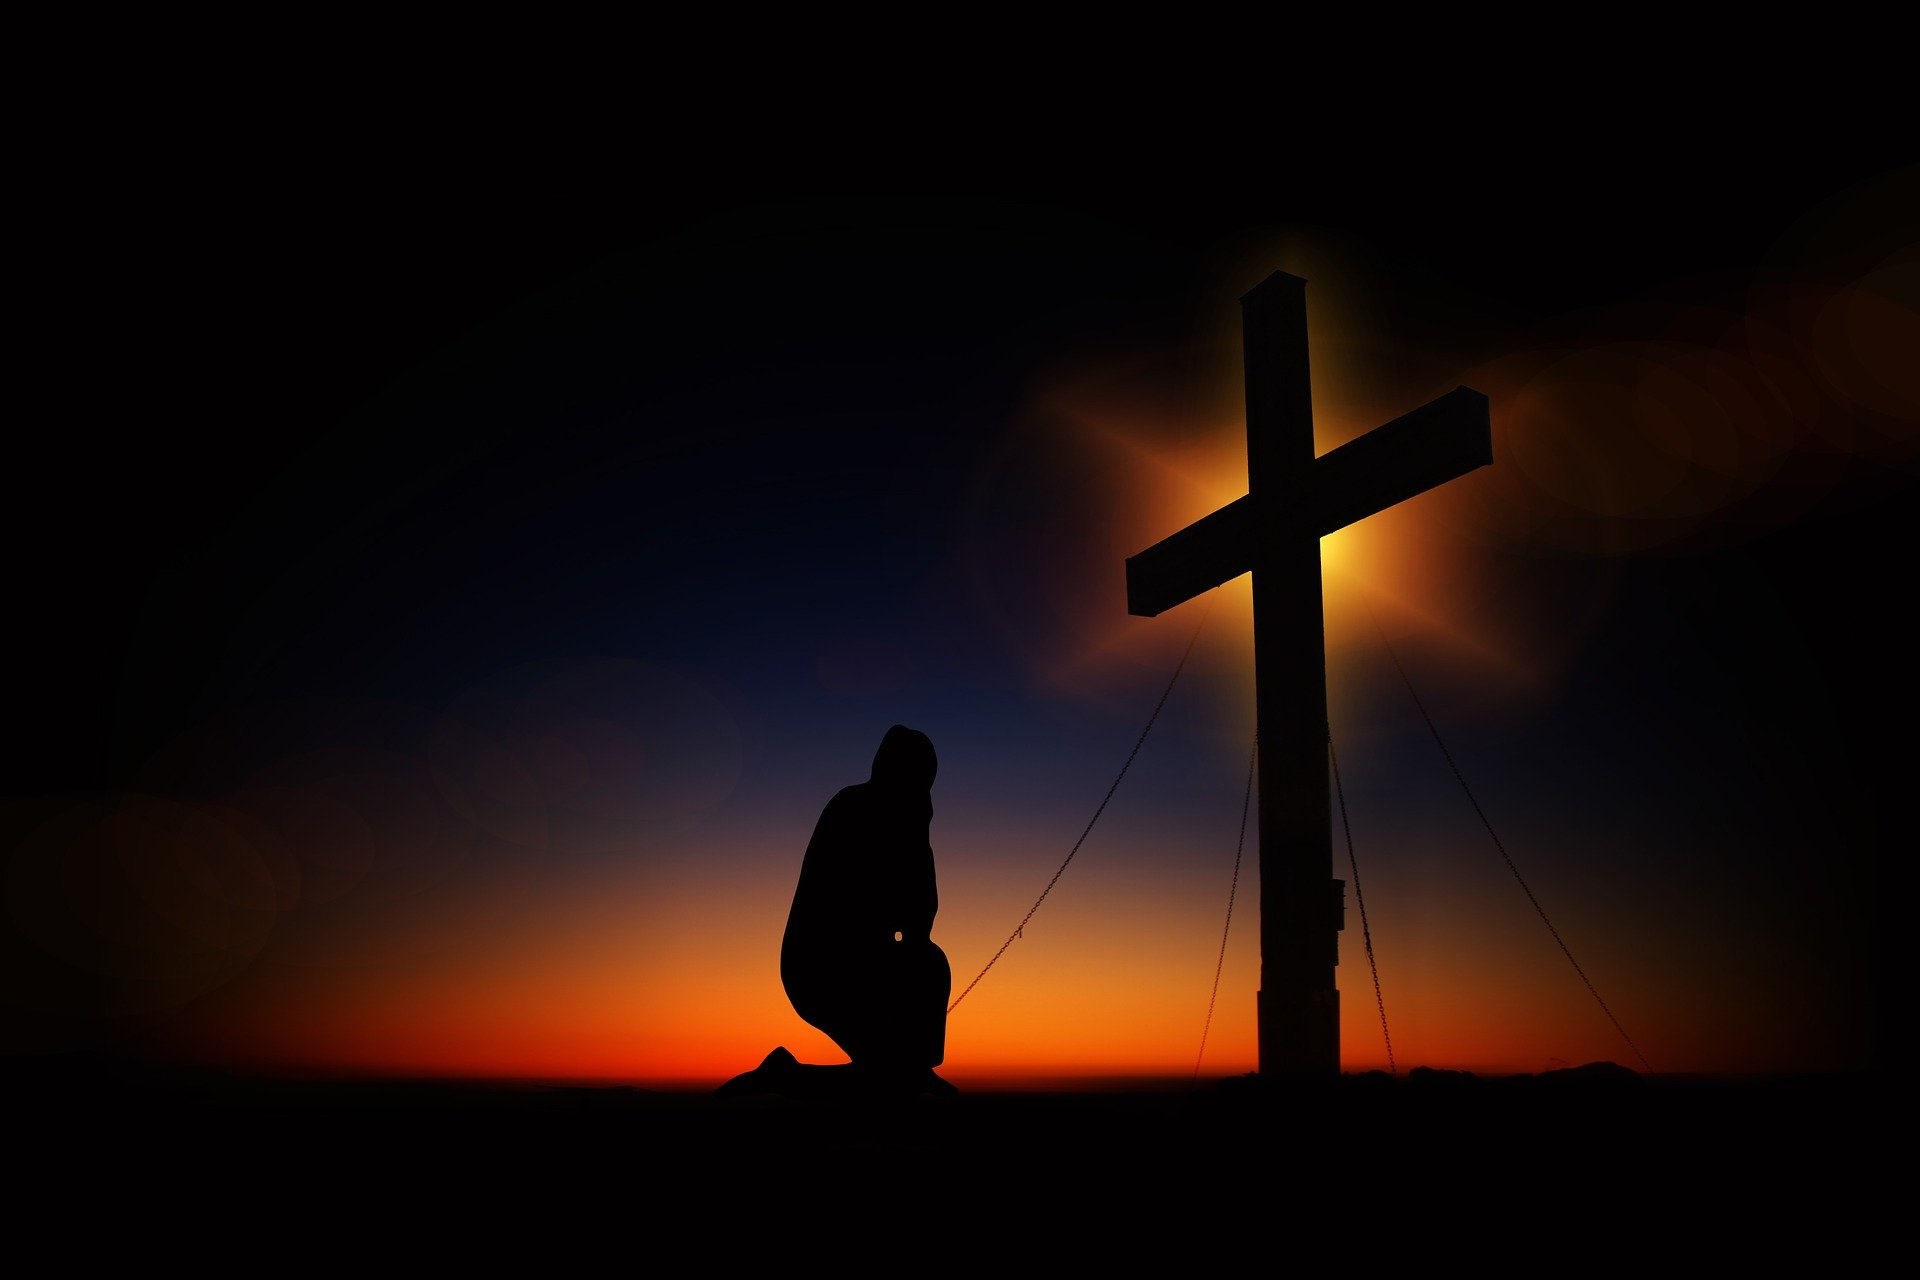 Kneeling humbly before the Cross